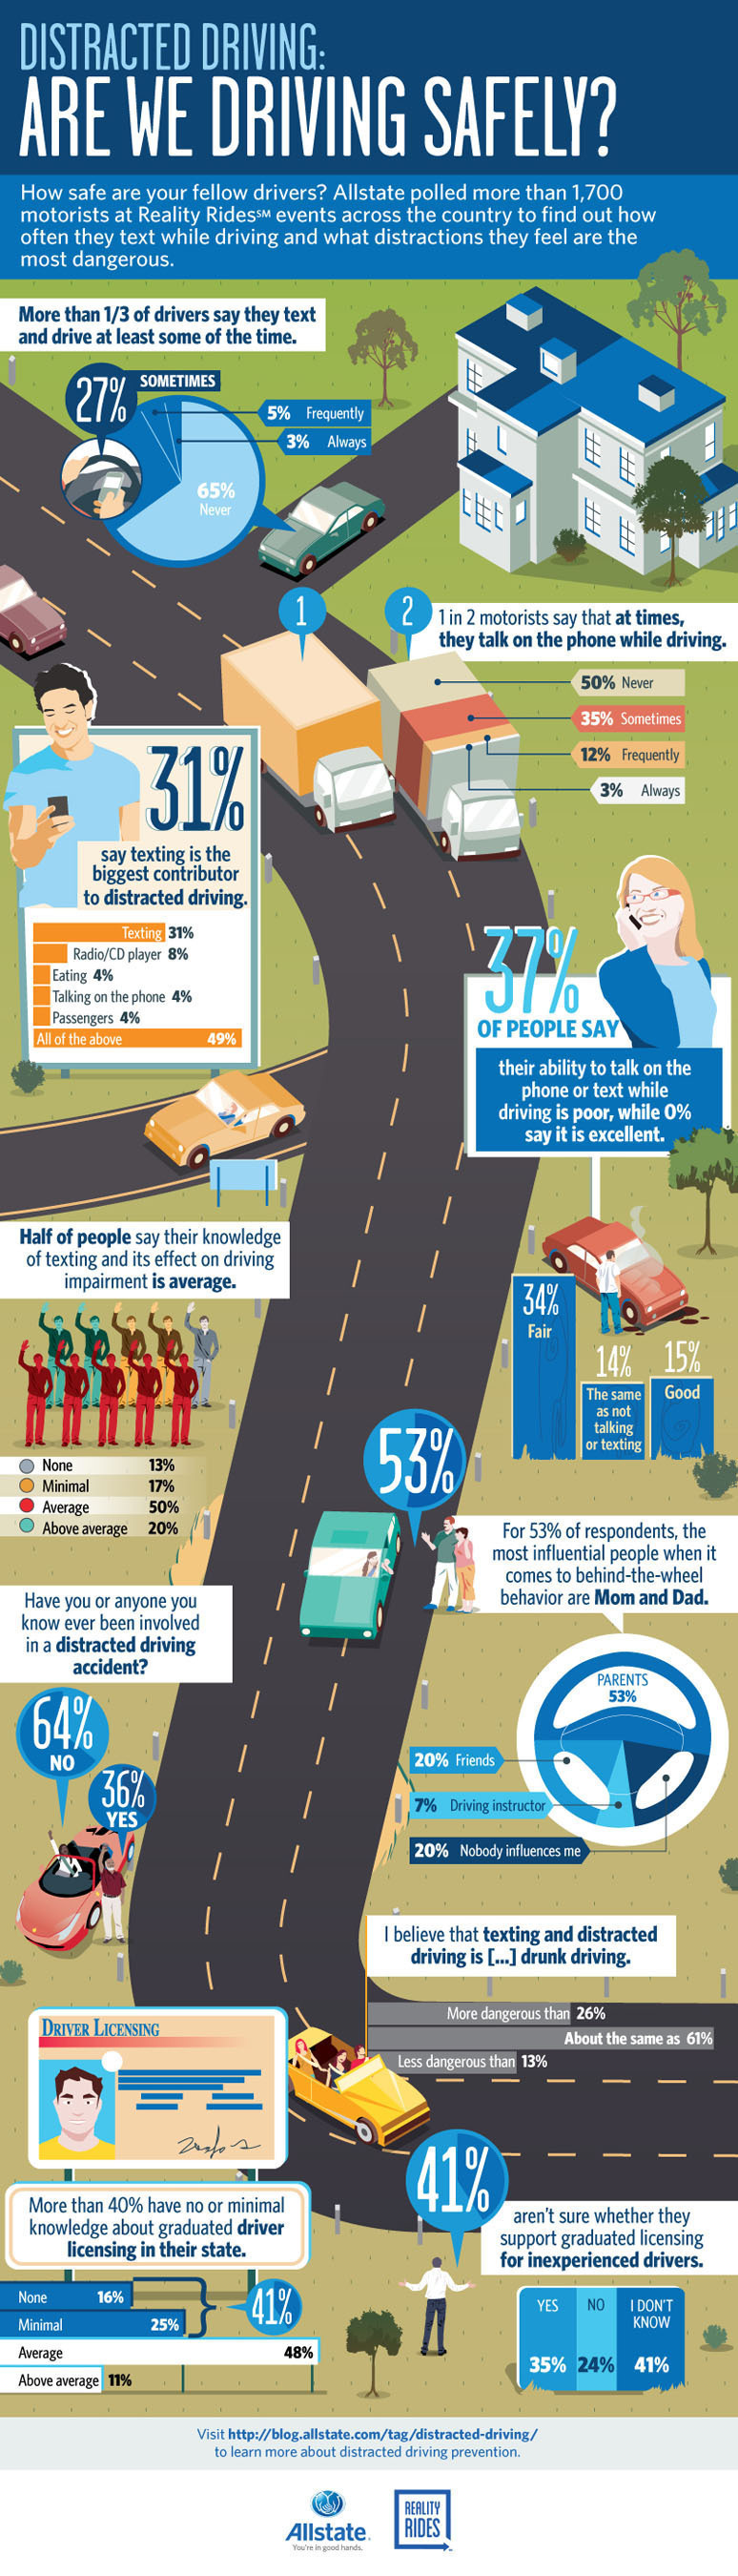 Key findings from the 2013 Allstate Reality Rides tour survey indicate drivers are aware of the dangers of distracted driving, but there is still opportunity to influence their safer driving actions. (PRNewsFoto/Allstate Insurance Company)